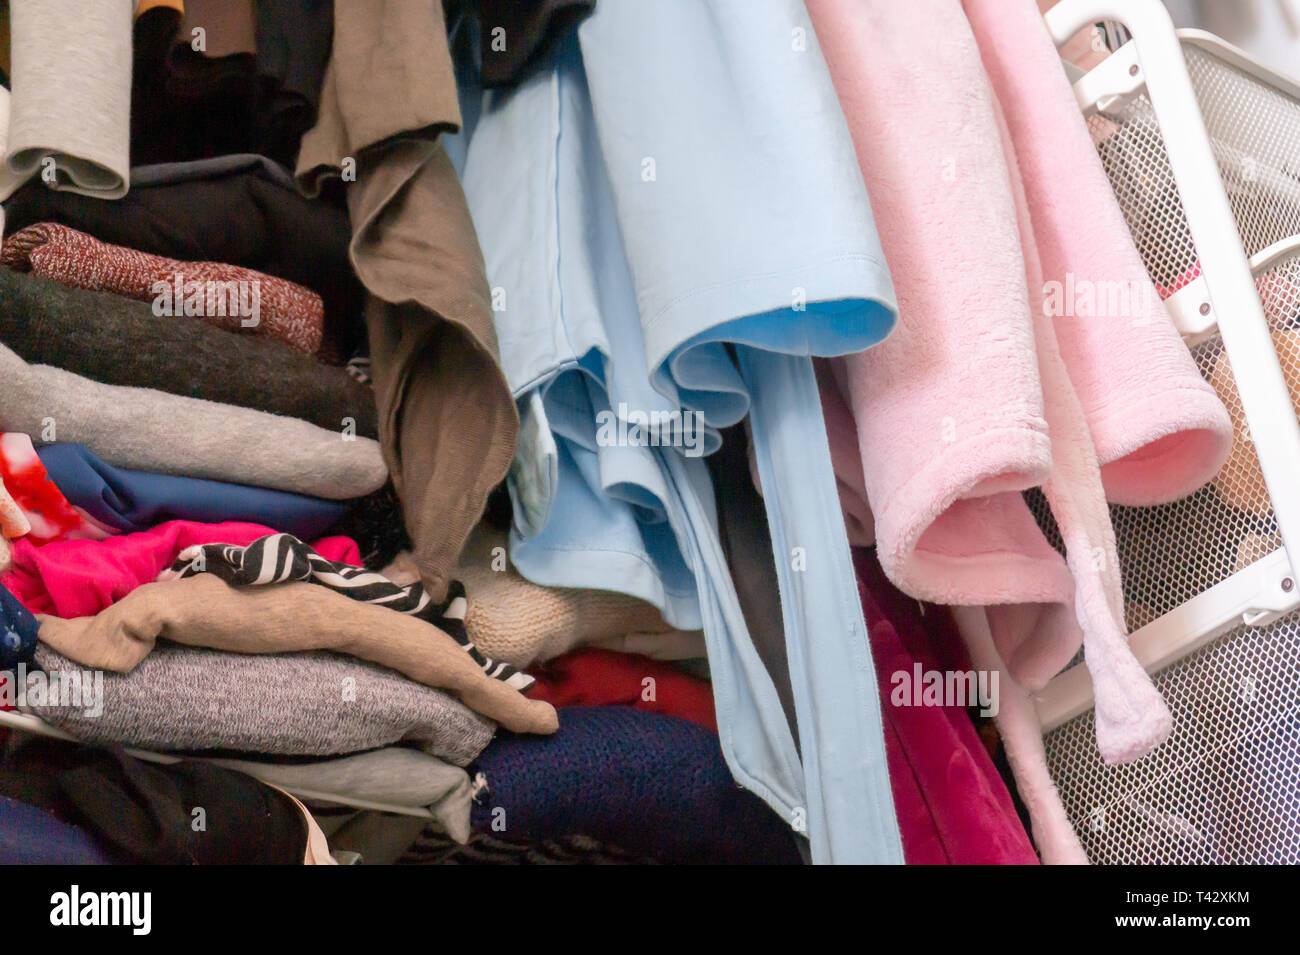 Blue and pink house robes hanging above folded, stacked and messy woman's closet, in need of closet organization. Depicting tidying up, excess. - Stock Image